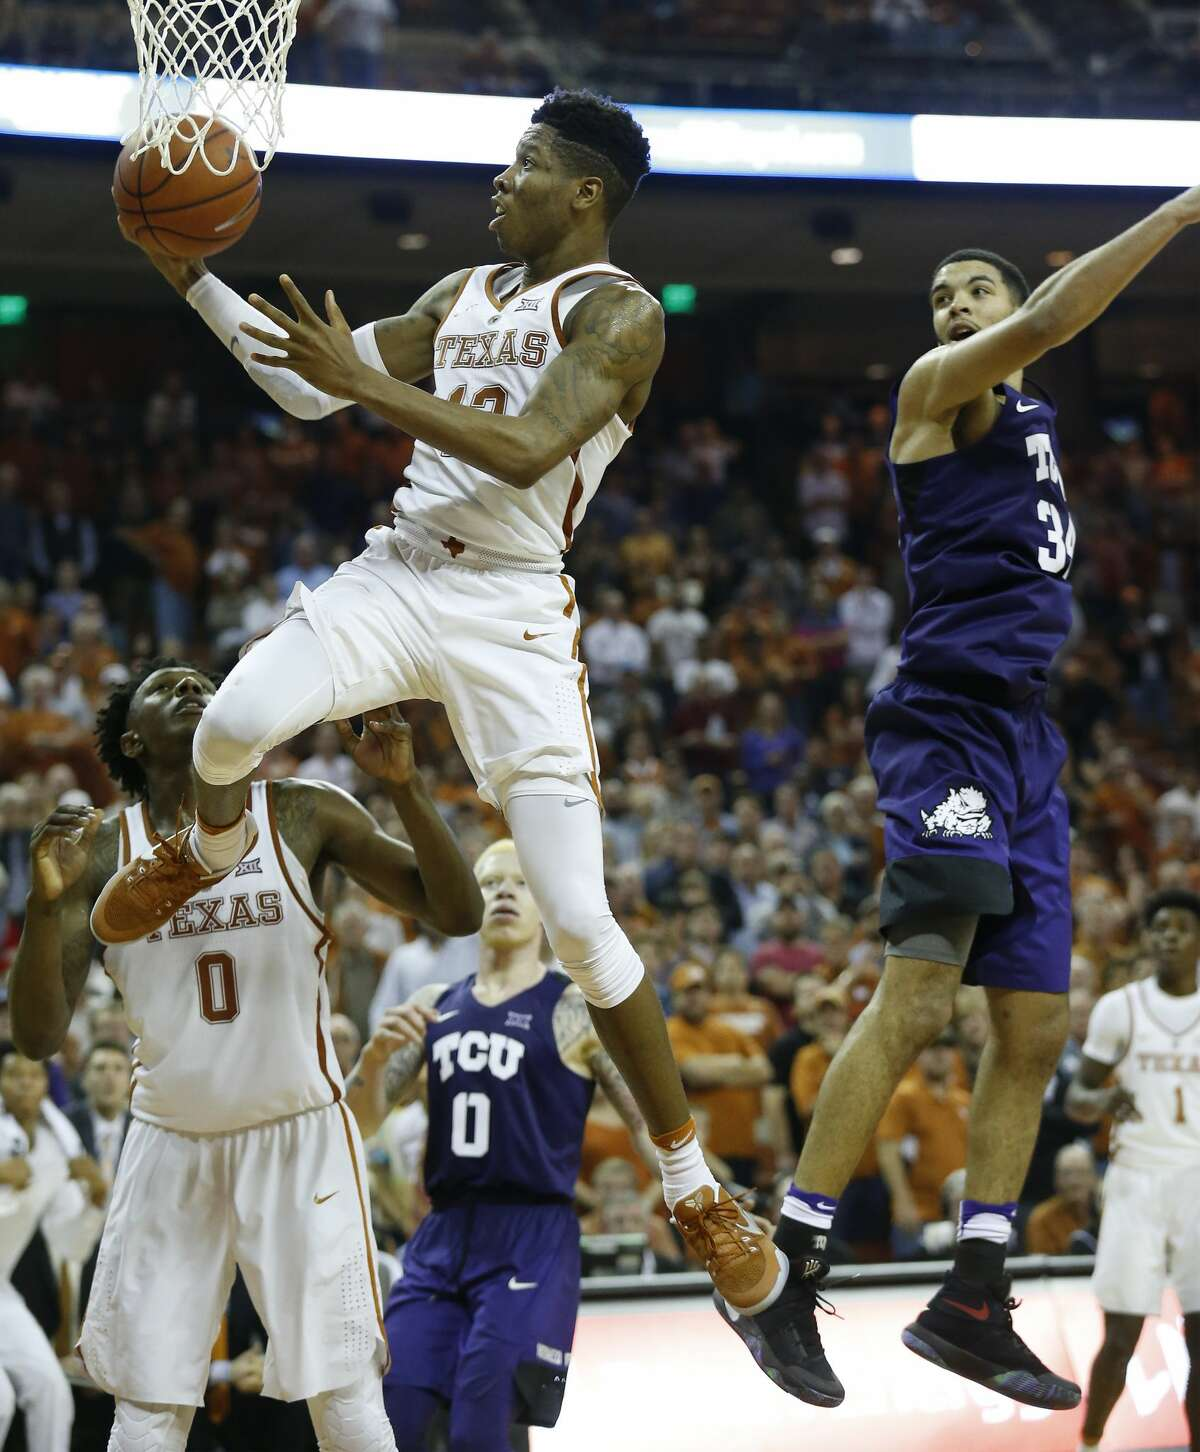 Texas' Kerwin Roach Jr. (12) flies to the basket to attempt a shot against TCU's Kenrich Williams (34) during their game at the Frank Irwin Center in Austin on Wednesday, Jan. 11, 2017. TCU defeated Texas, 64-61.(Kin Man Hui/San Antonio Express-News)